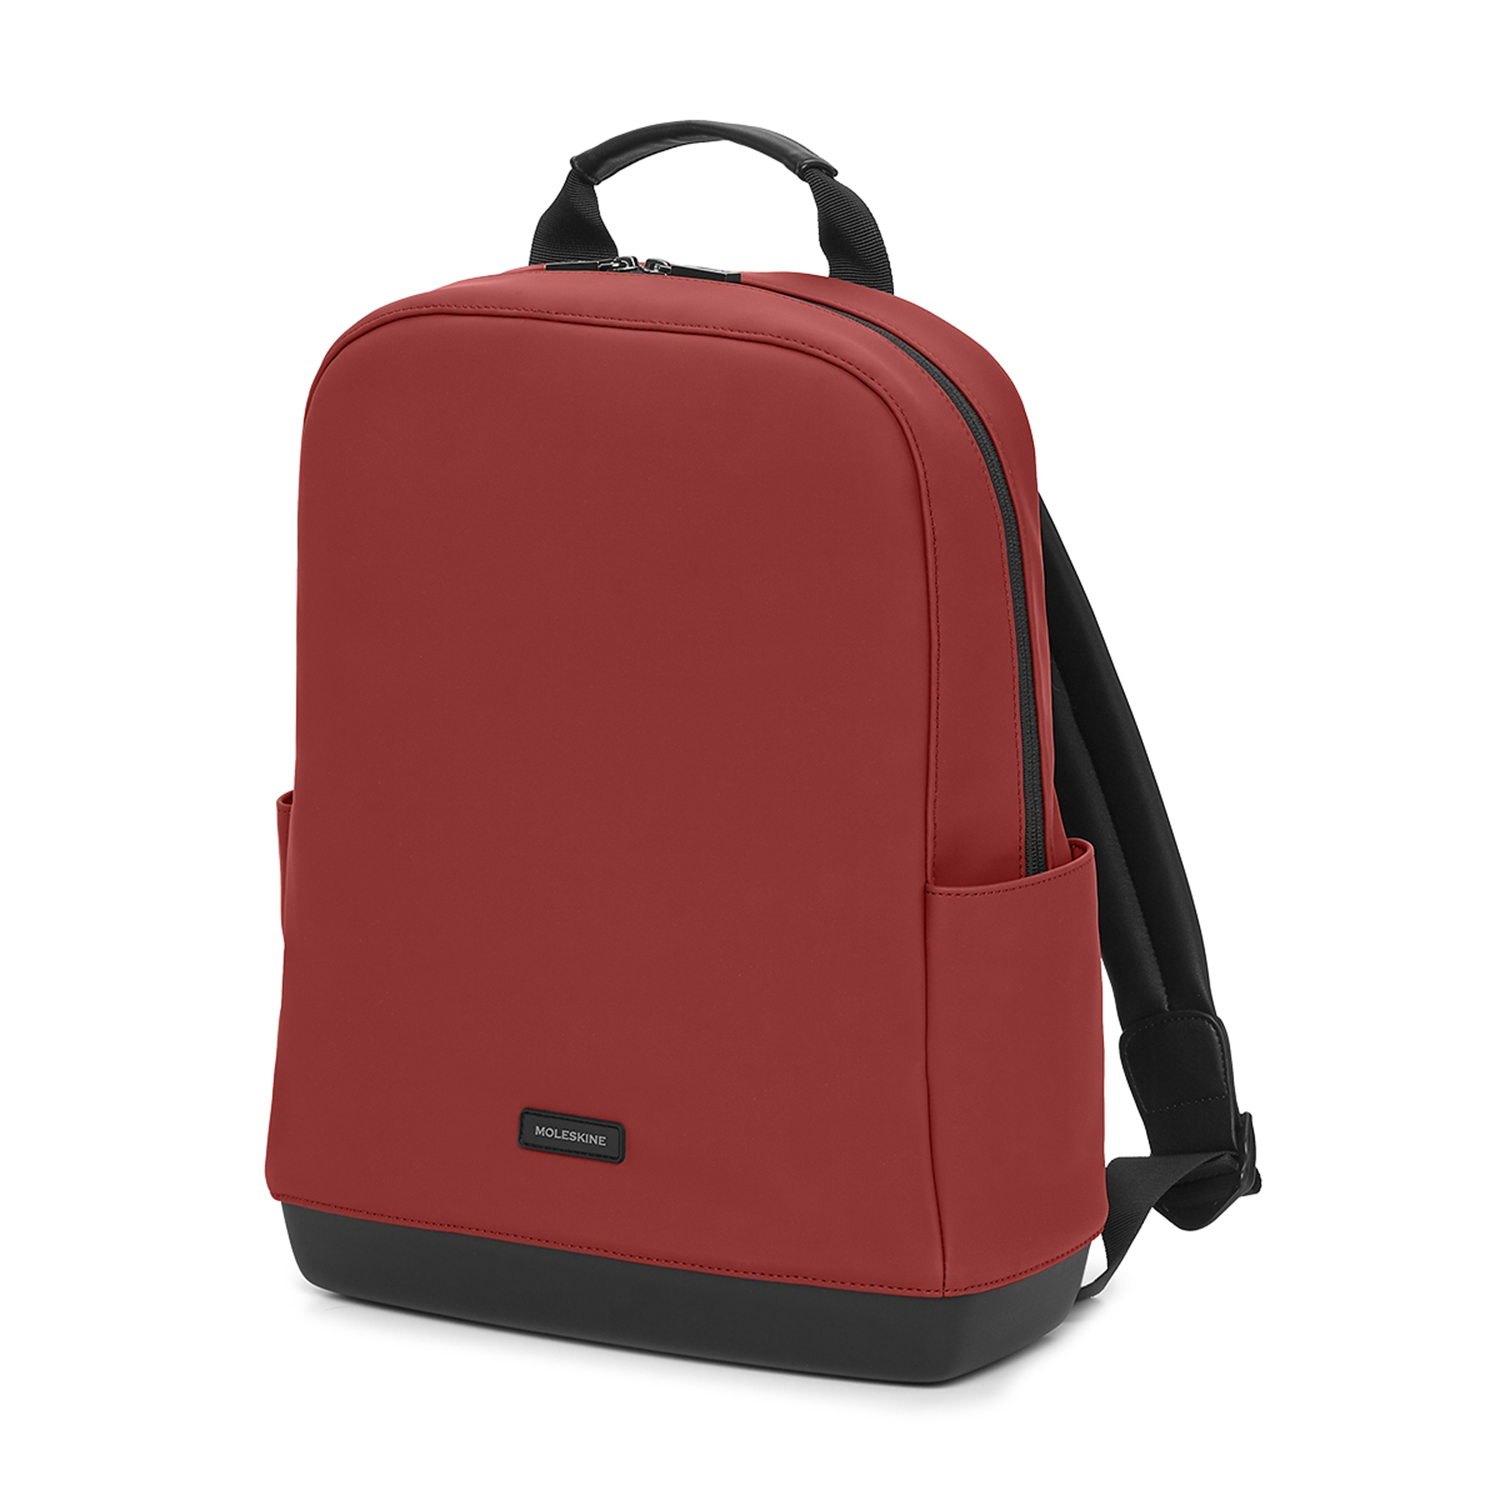 Moleskin The Backpack Review